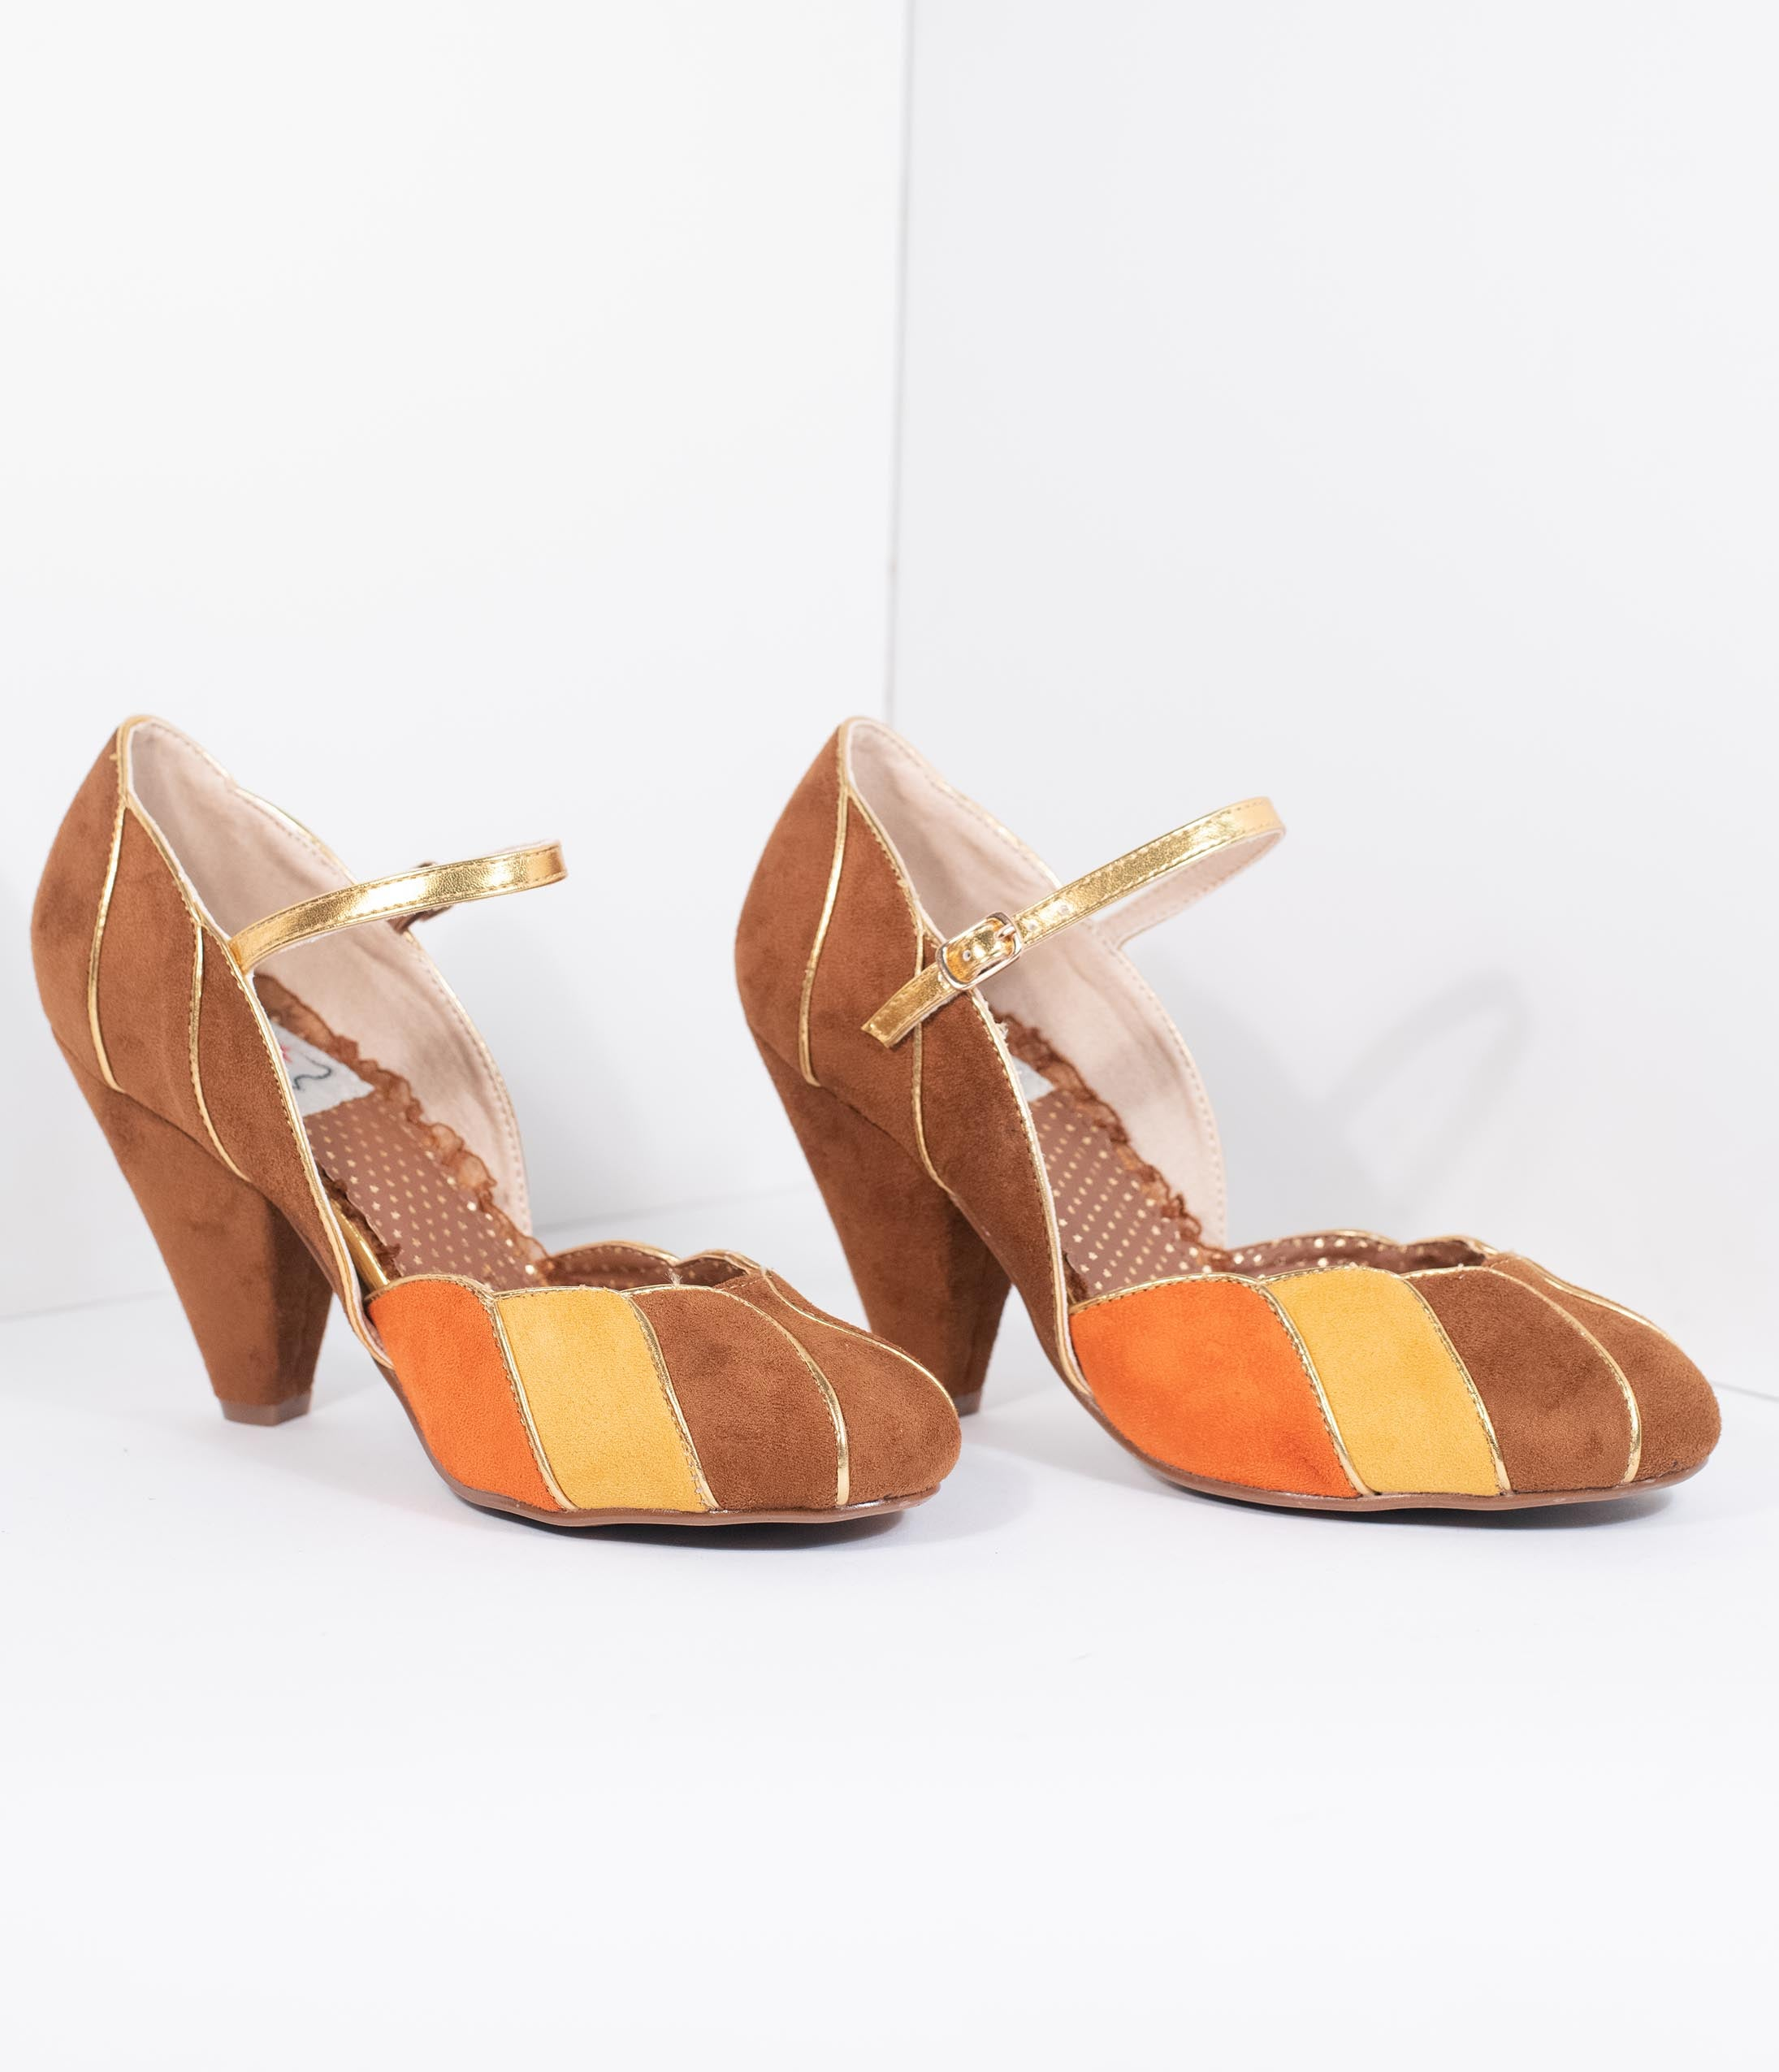 Pin Up Shoes- Heels, Pumps & Flats Bettie Page 1950S Brown Suede Kathryn Heels $80.00 AT vintagedancer.com